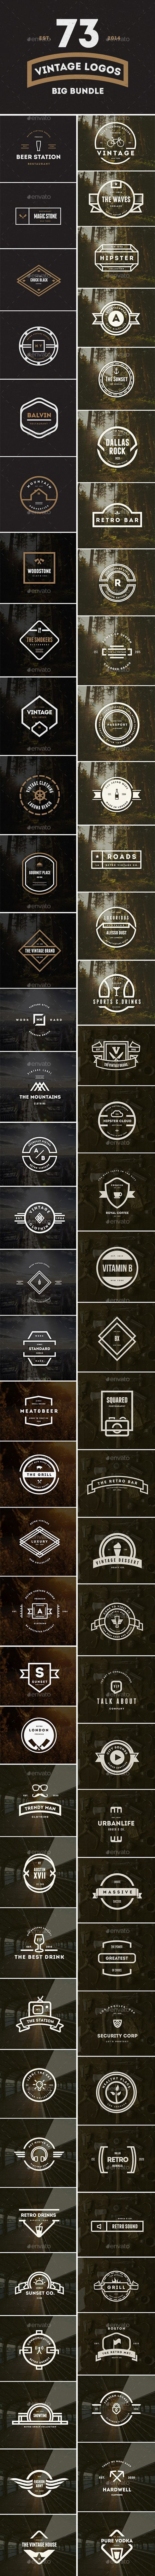 73 Vintage Labels & Badges Logos Bundle Template PSD   Buy and Download: http://graphicriver.net/item/73-vintage-labels-badges-logos-bundle/9624640?WT.oss_phrase=&WT.oss_rank=7&WT.z_author=designdistrictmx&WT.ac=search_thumb&ref=ksioks: